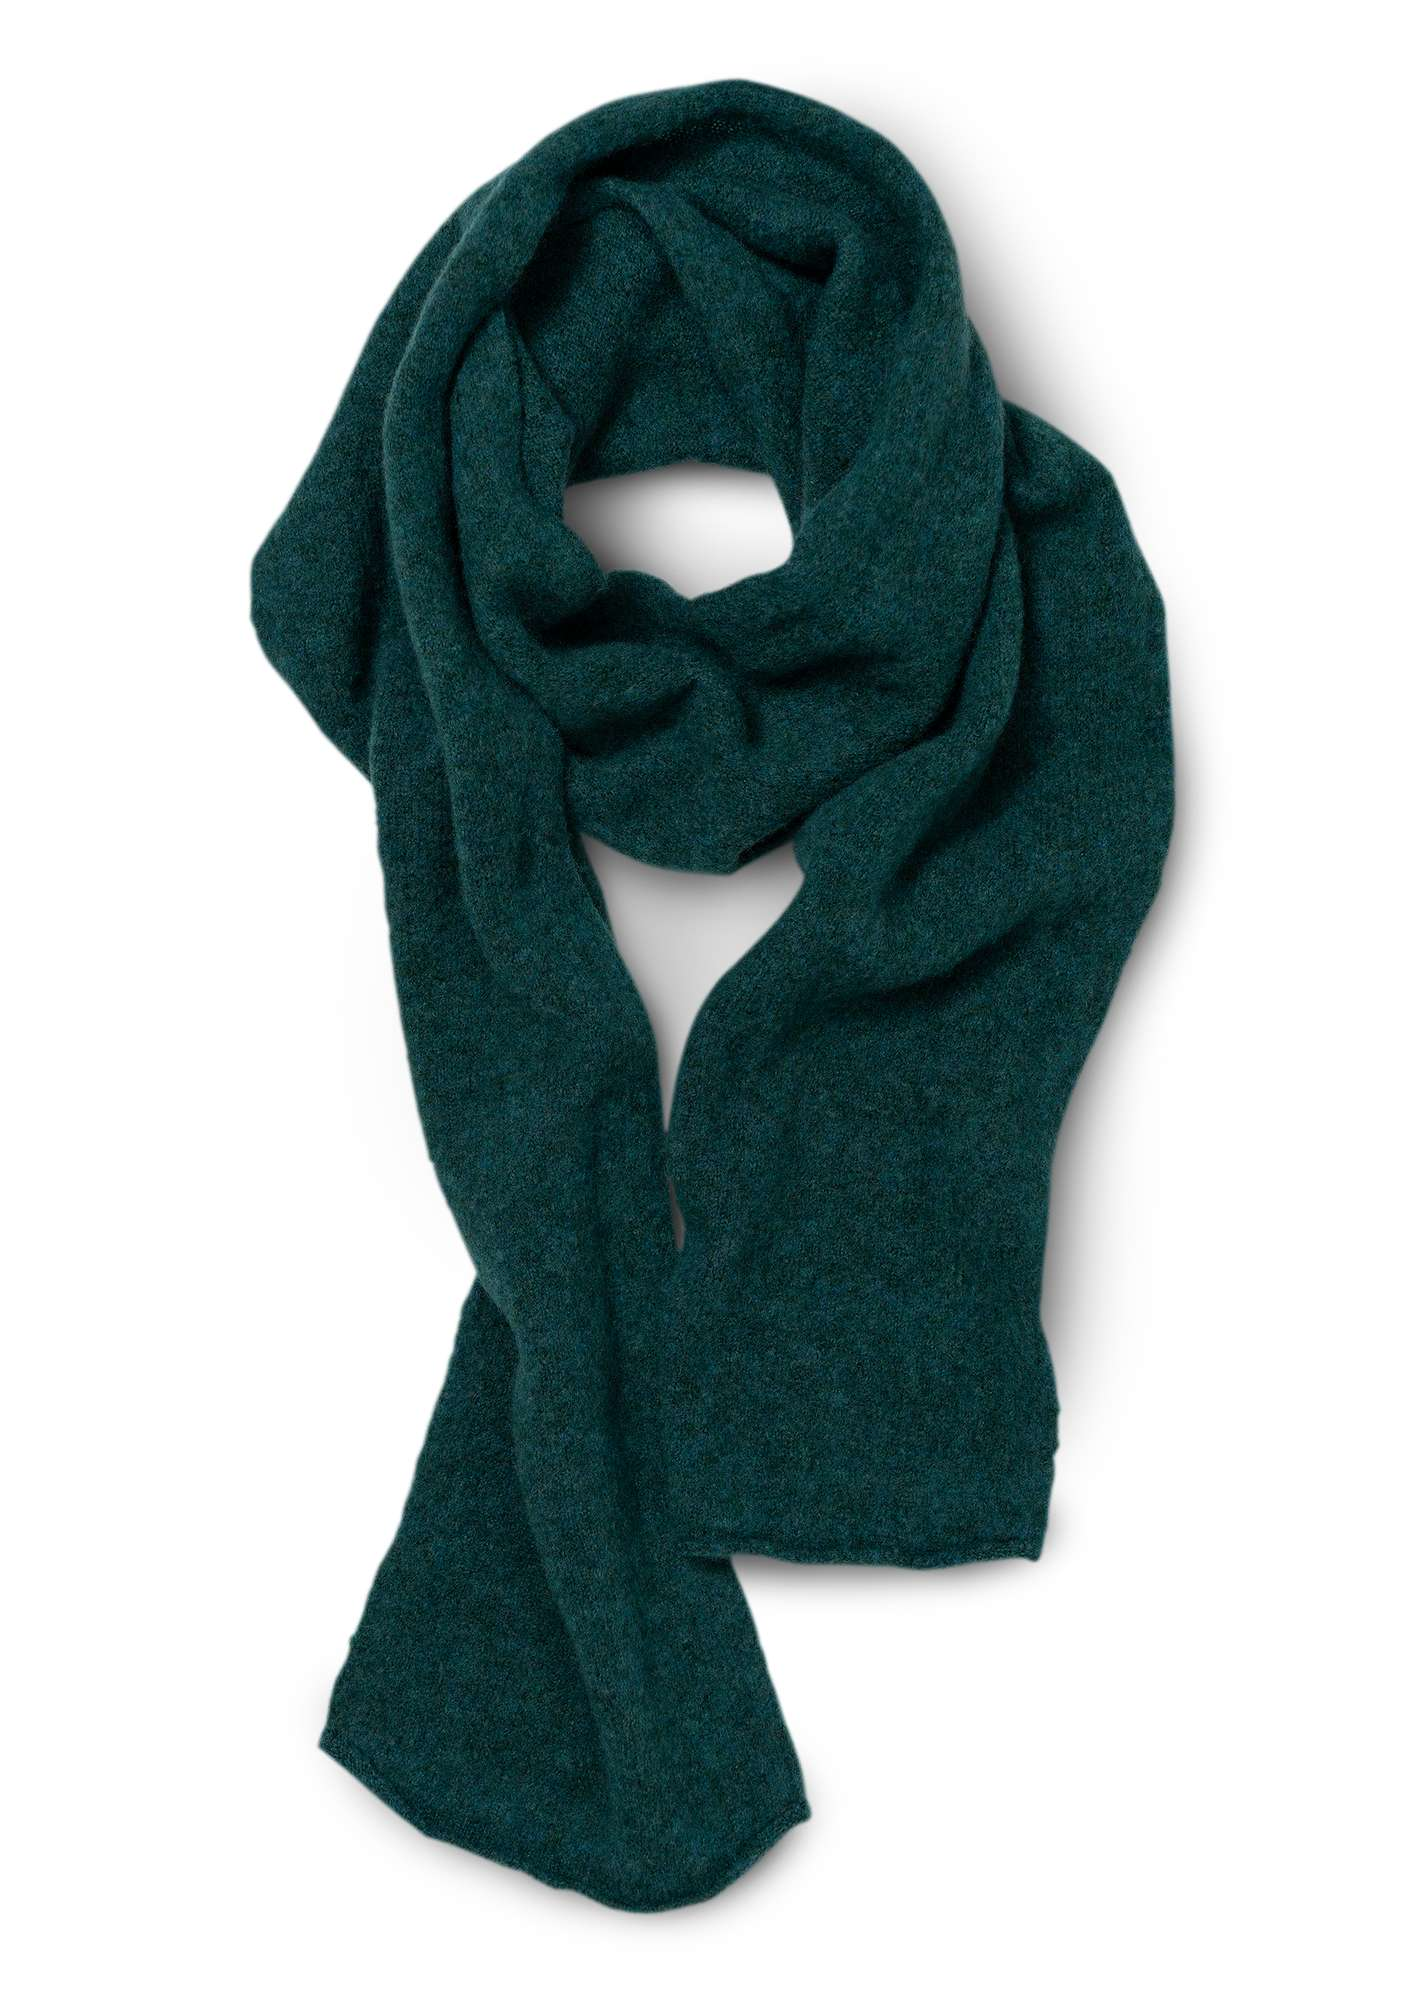 Solid-color scarf in a recycled cashmere blend bottle green